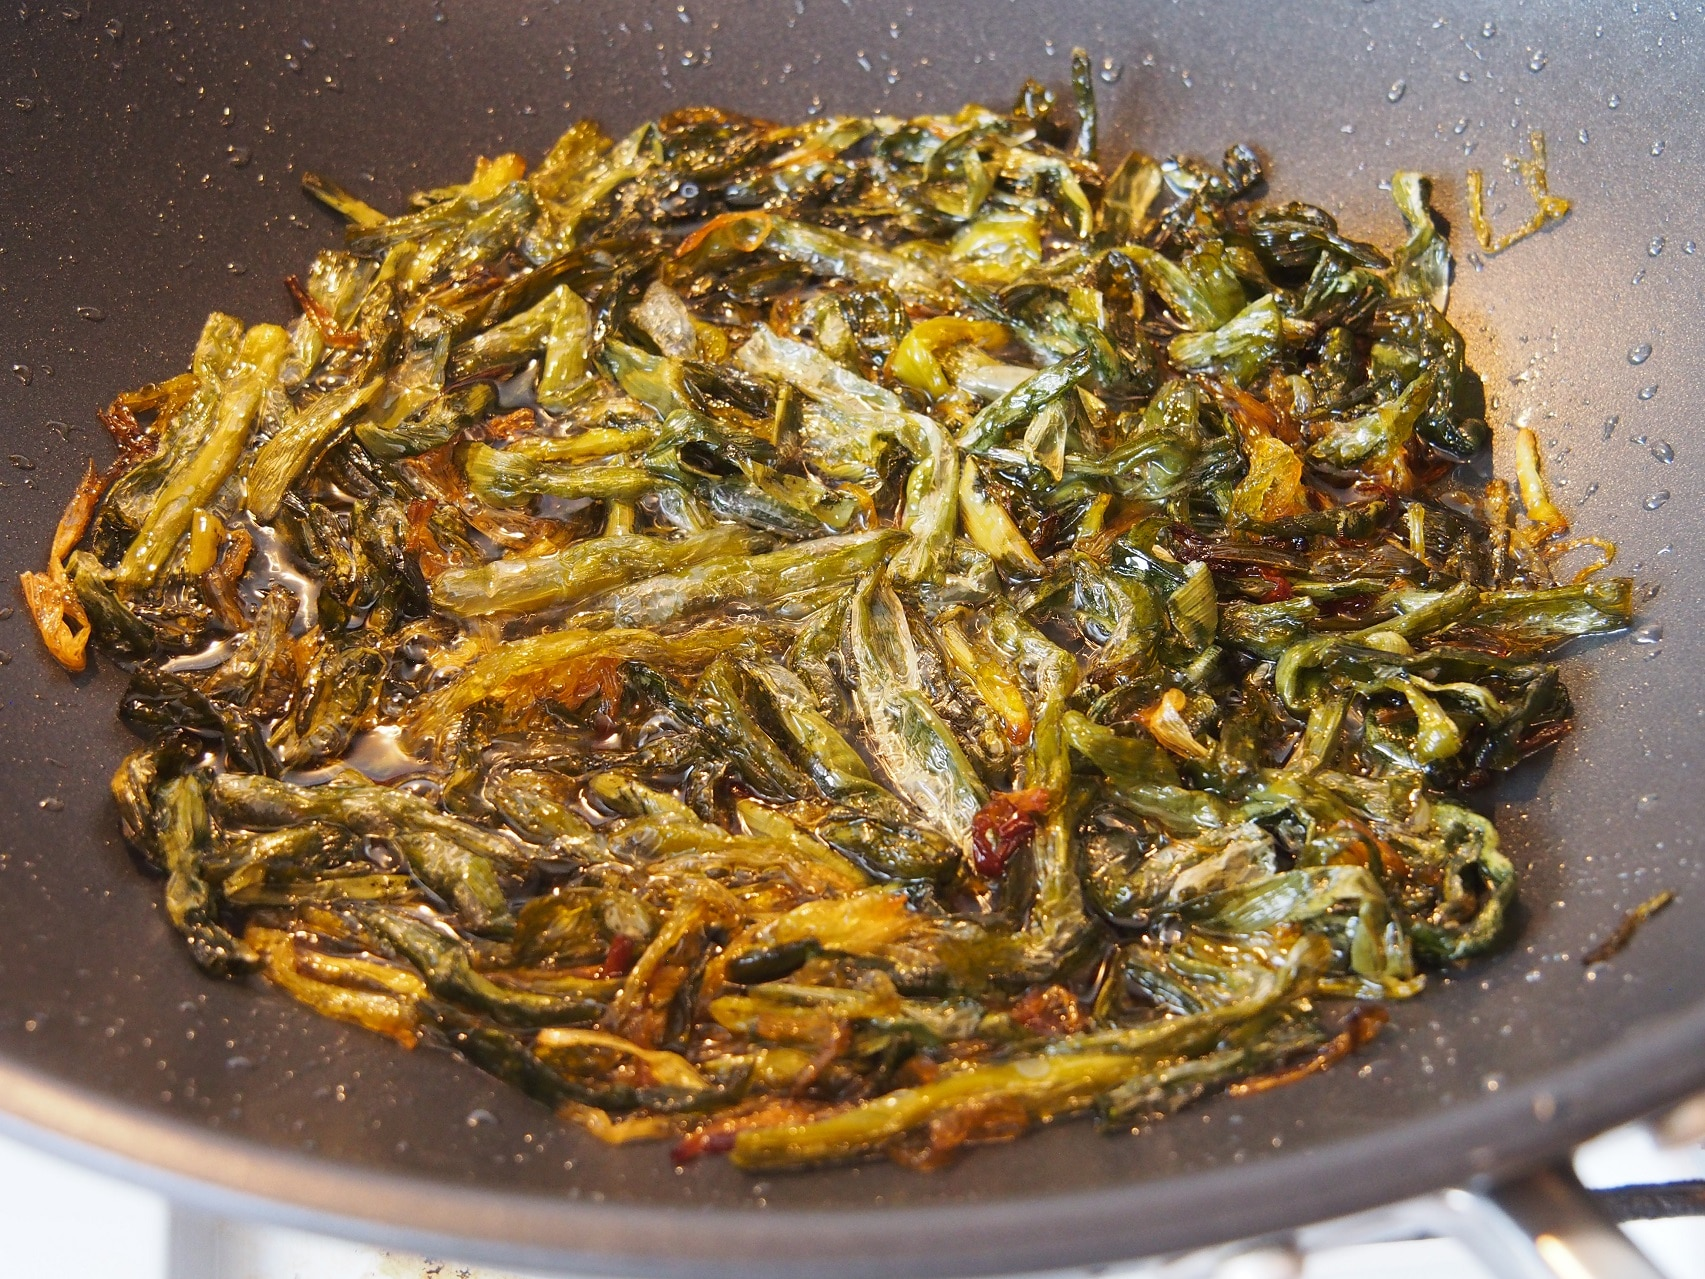 Cooking Blog - Spring Onion Oil Noodles 9